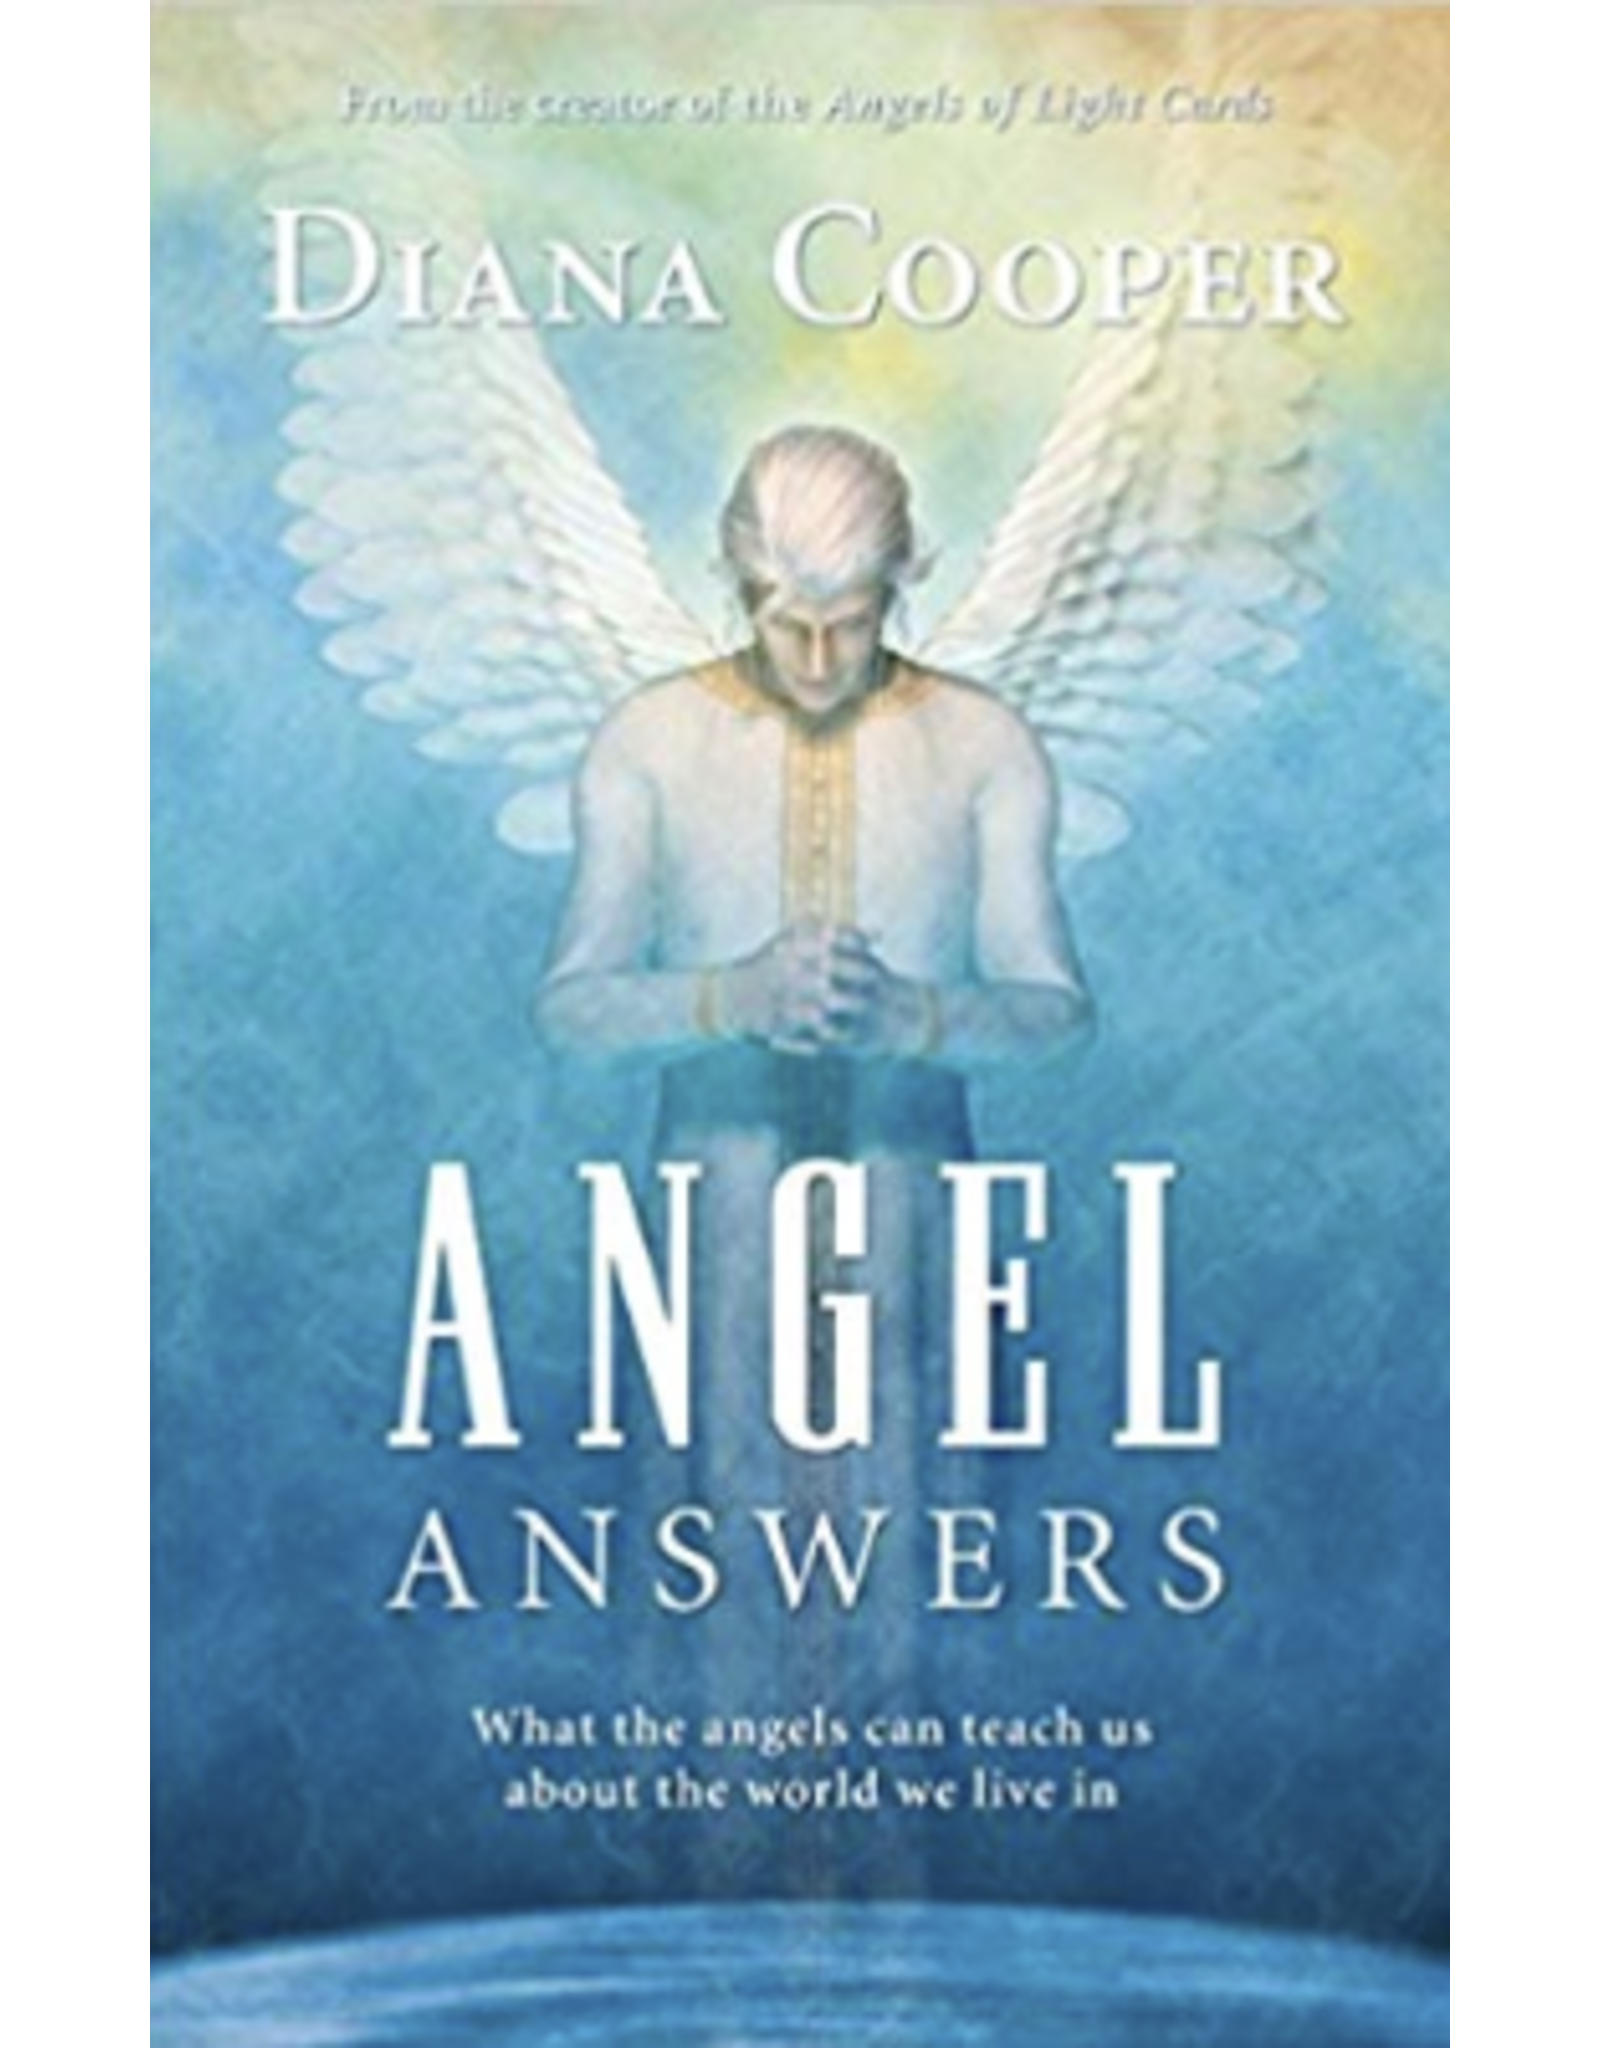 Angel Answers : What the Angels can